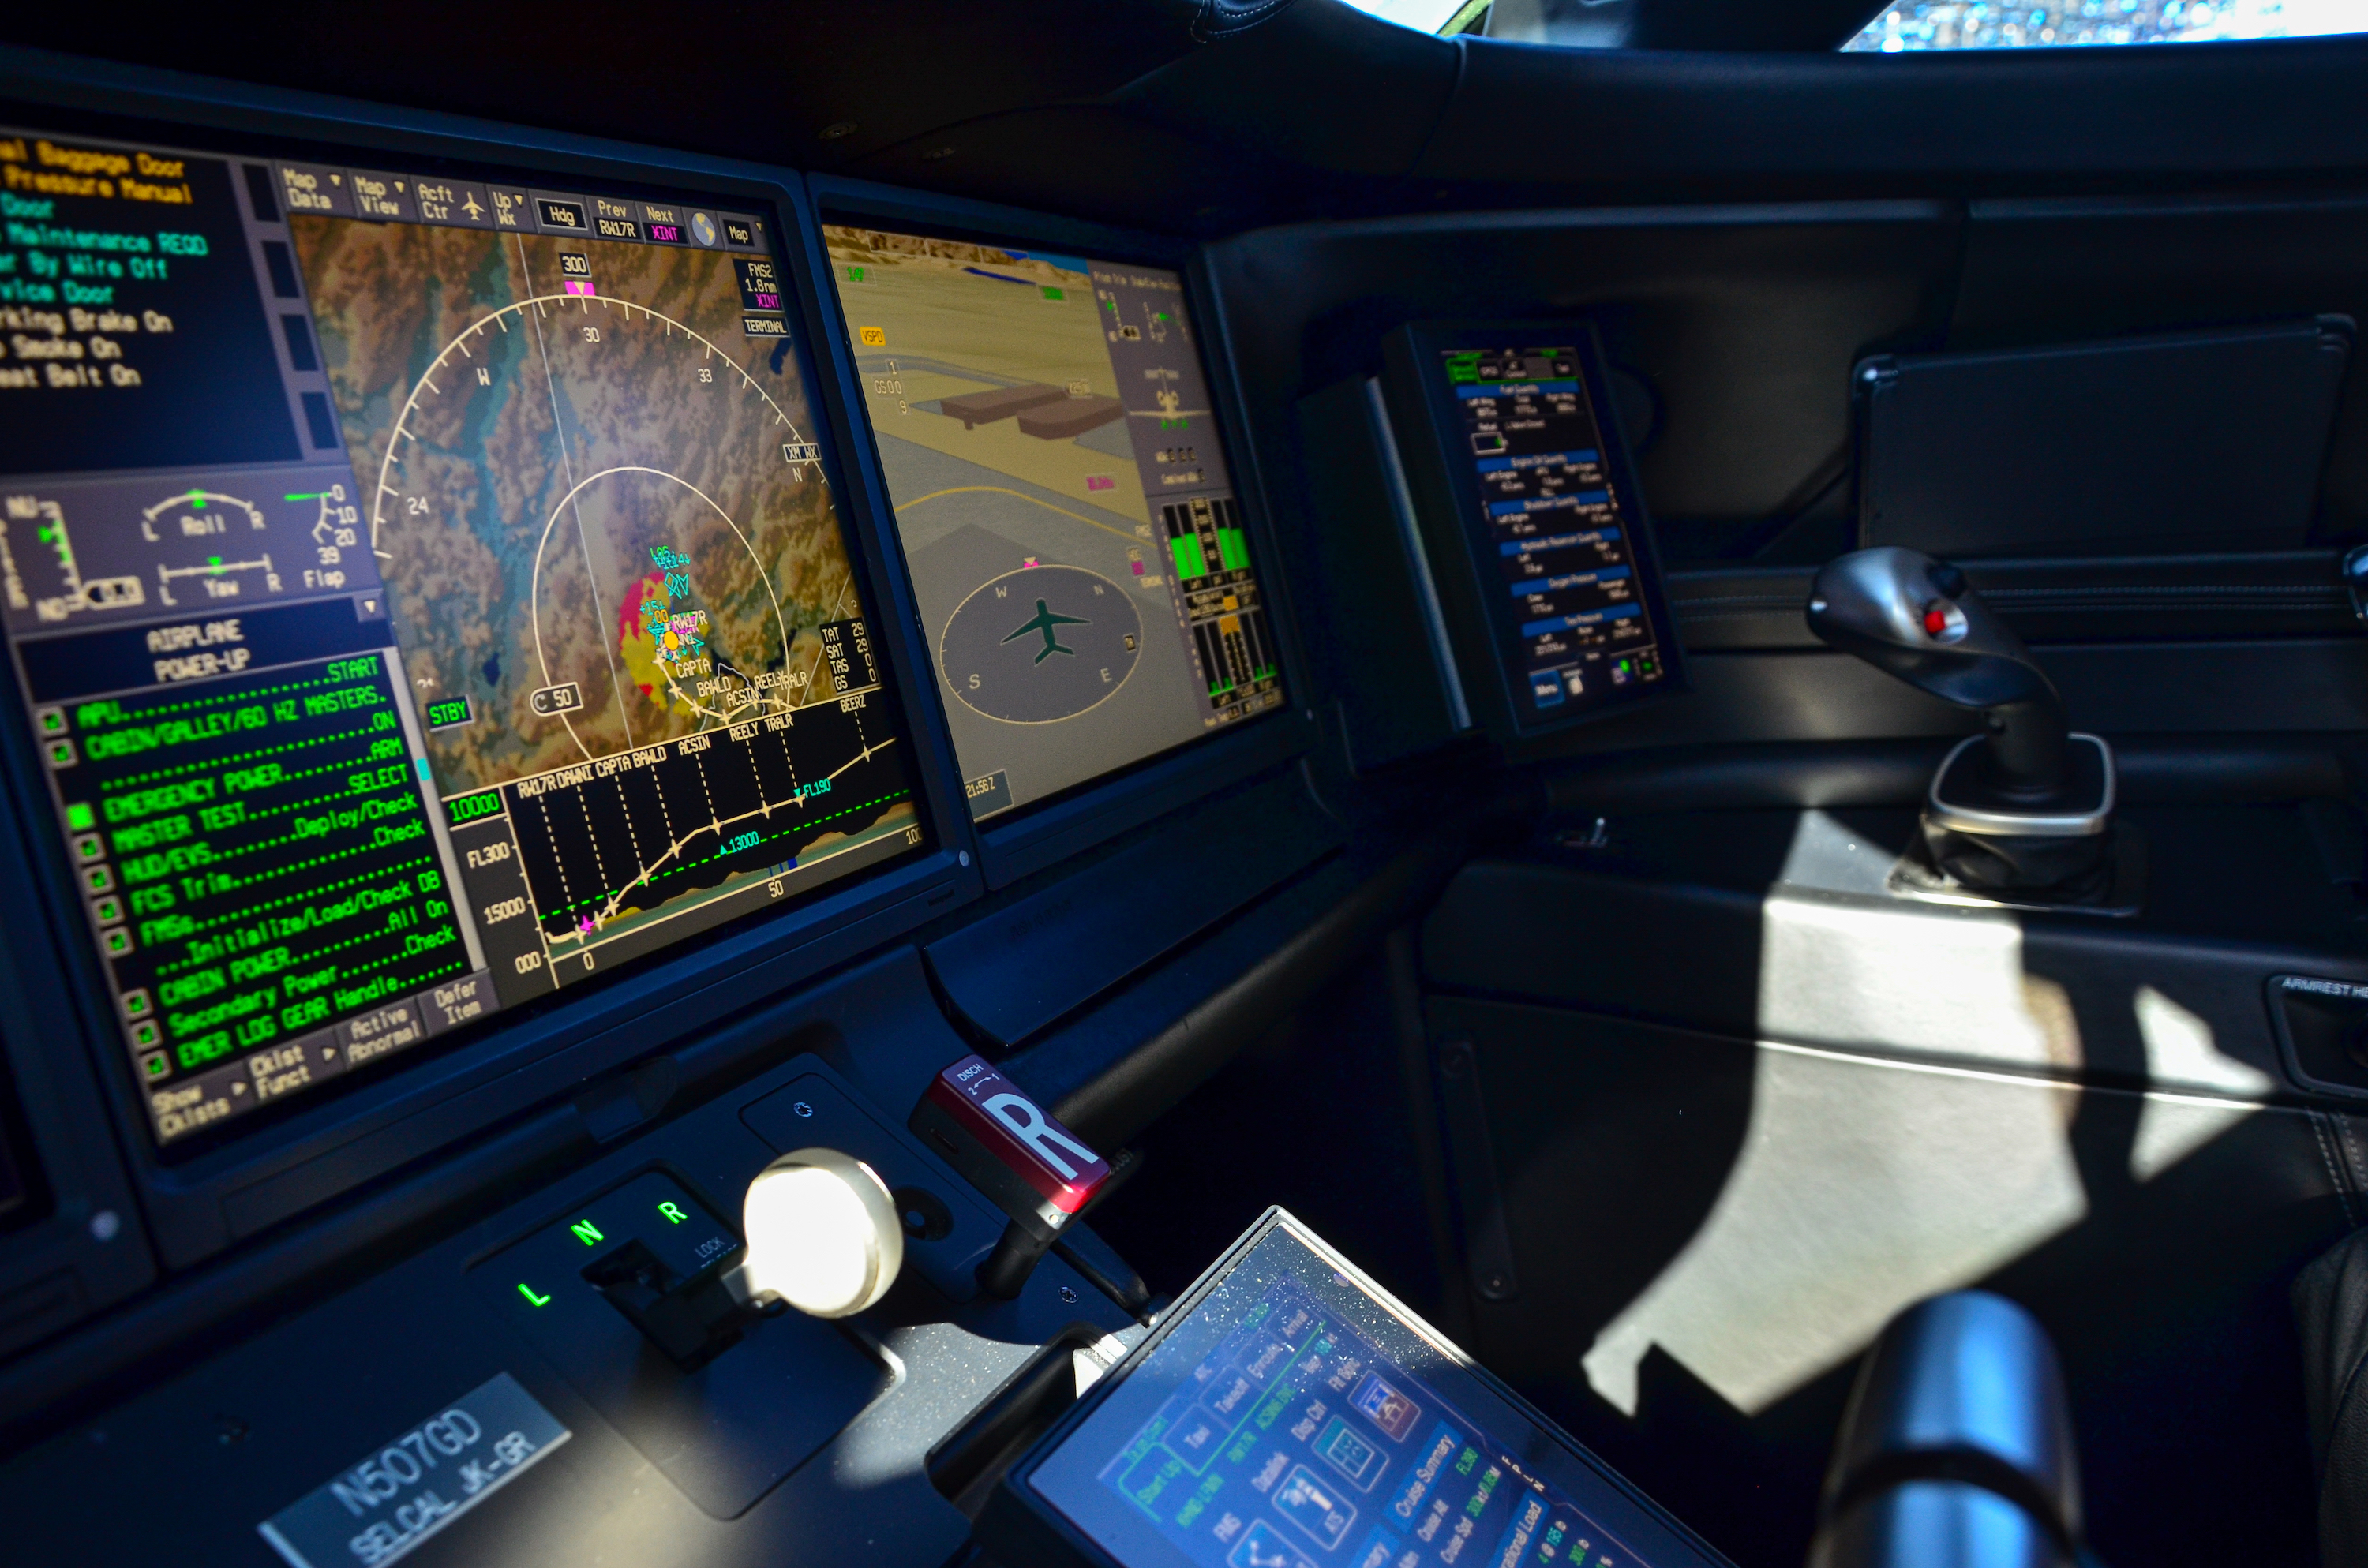 The Symmetry flight deck was first introduced with the G500 and G600 and will now be adapted for the G400 and G800.